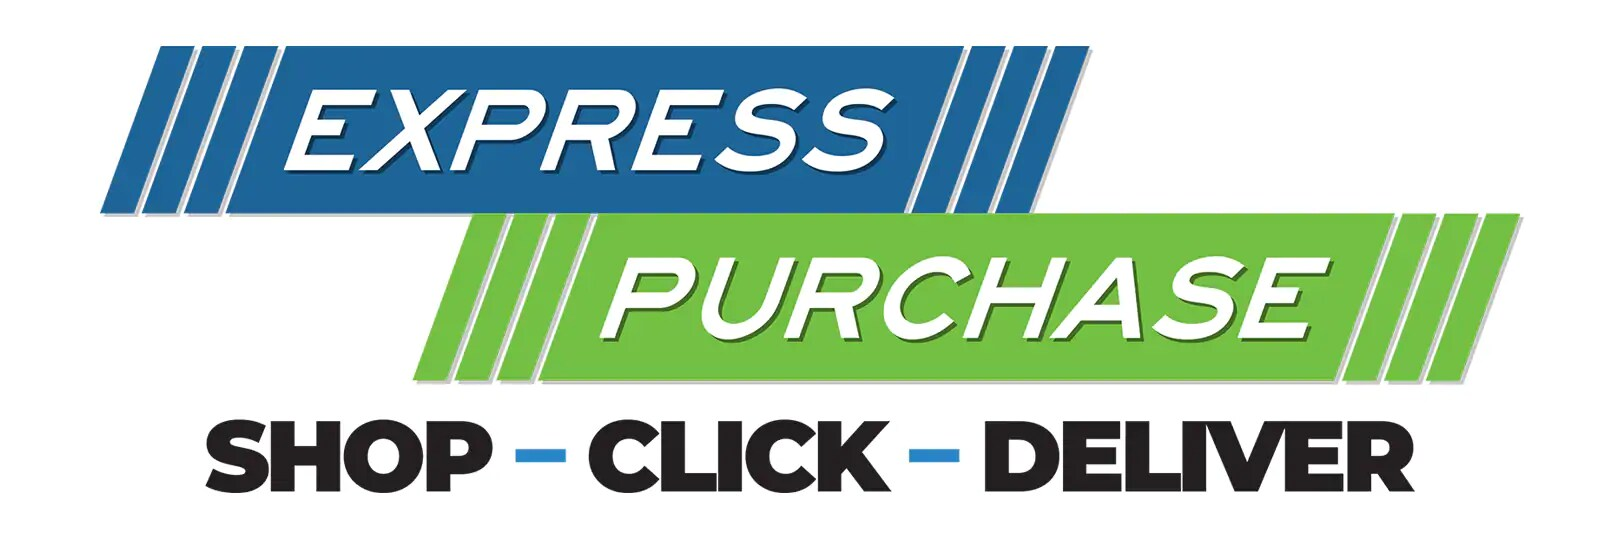 EXPRESS_PURCHASE__BTNLABEL_CTA_15